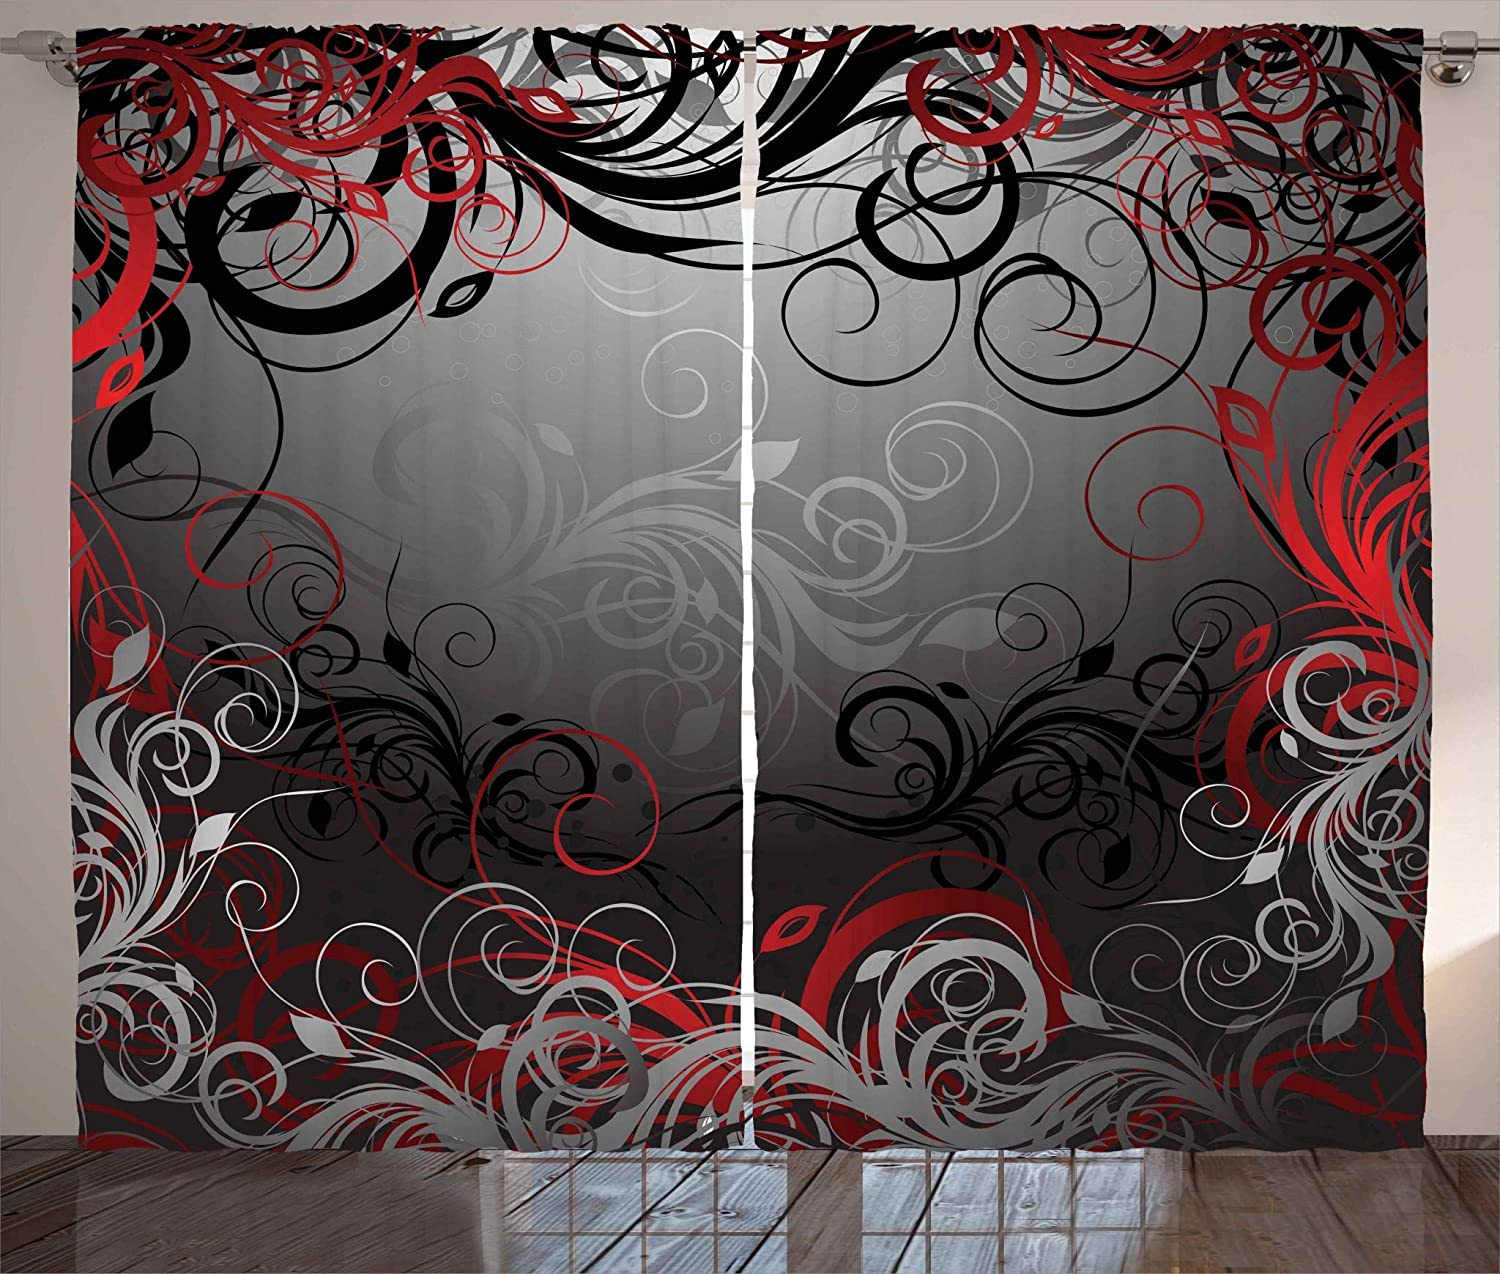 Ambesonne Abstract Curtains, Mystic Magical Forest Floral Swirls Leaves Nature Fading Ombre Effect, Living Room Bedroom Window Drapes 2 Panel Set, 108 W X 84 L Inches, Charcoal Grey Pale Ruby